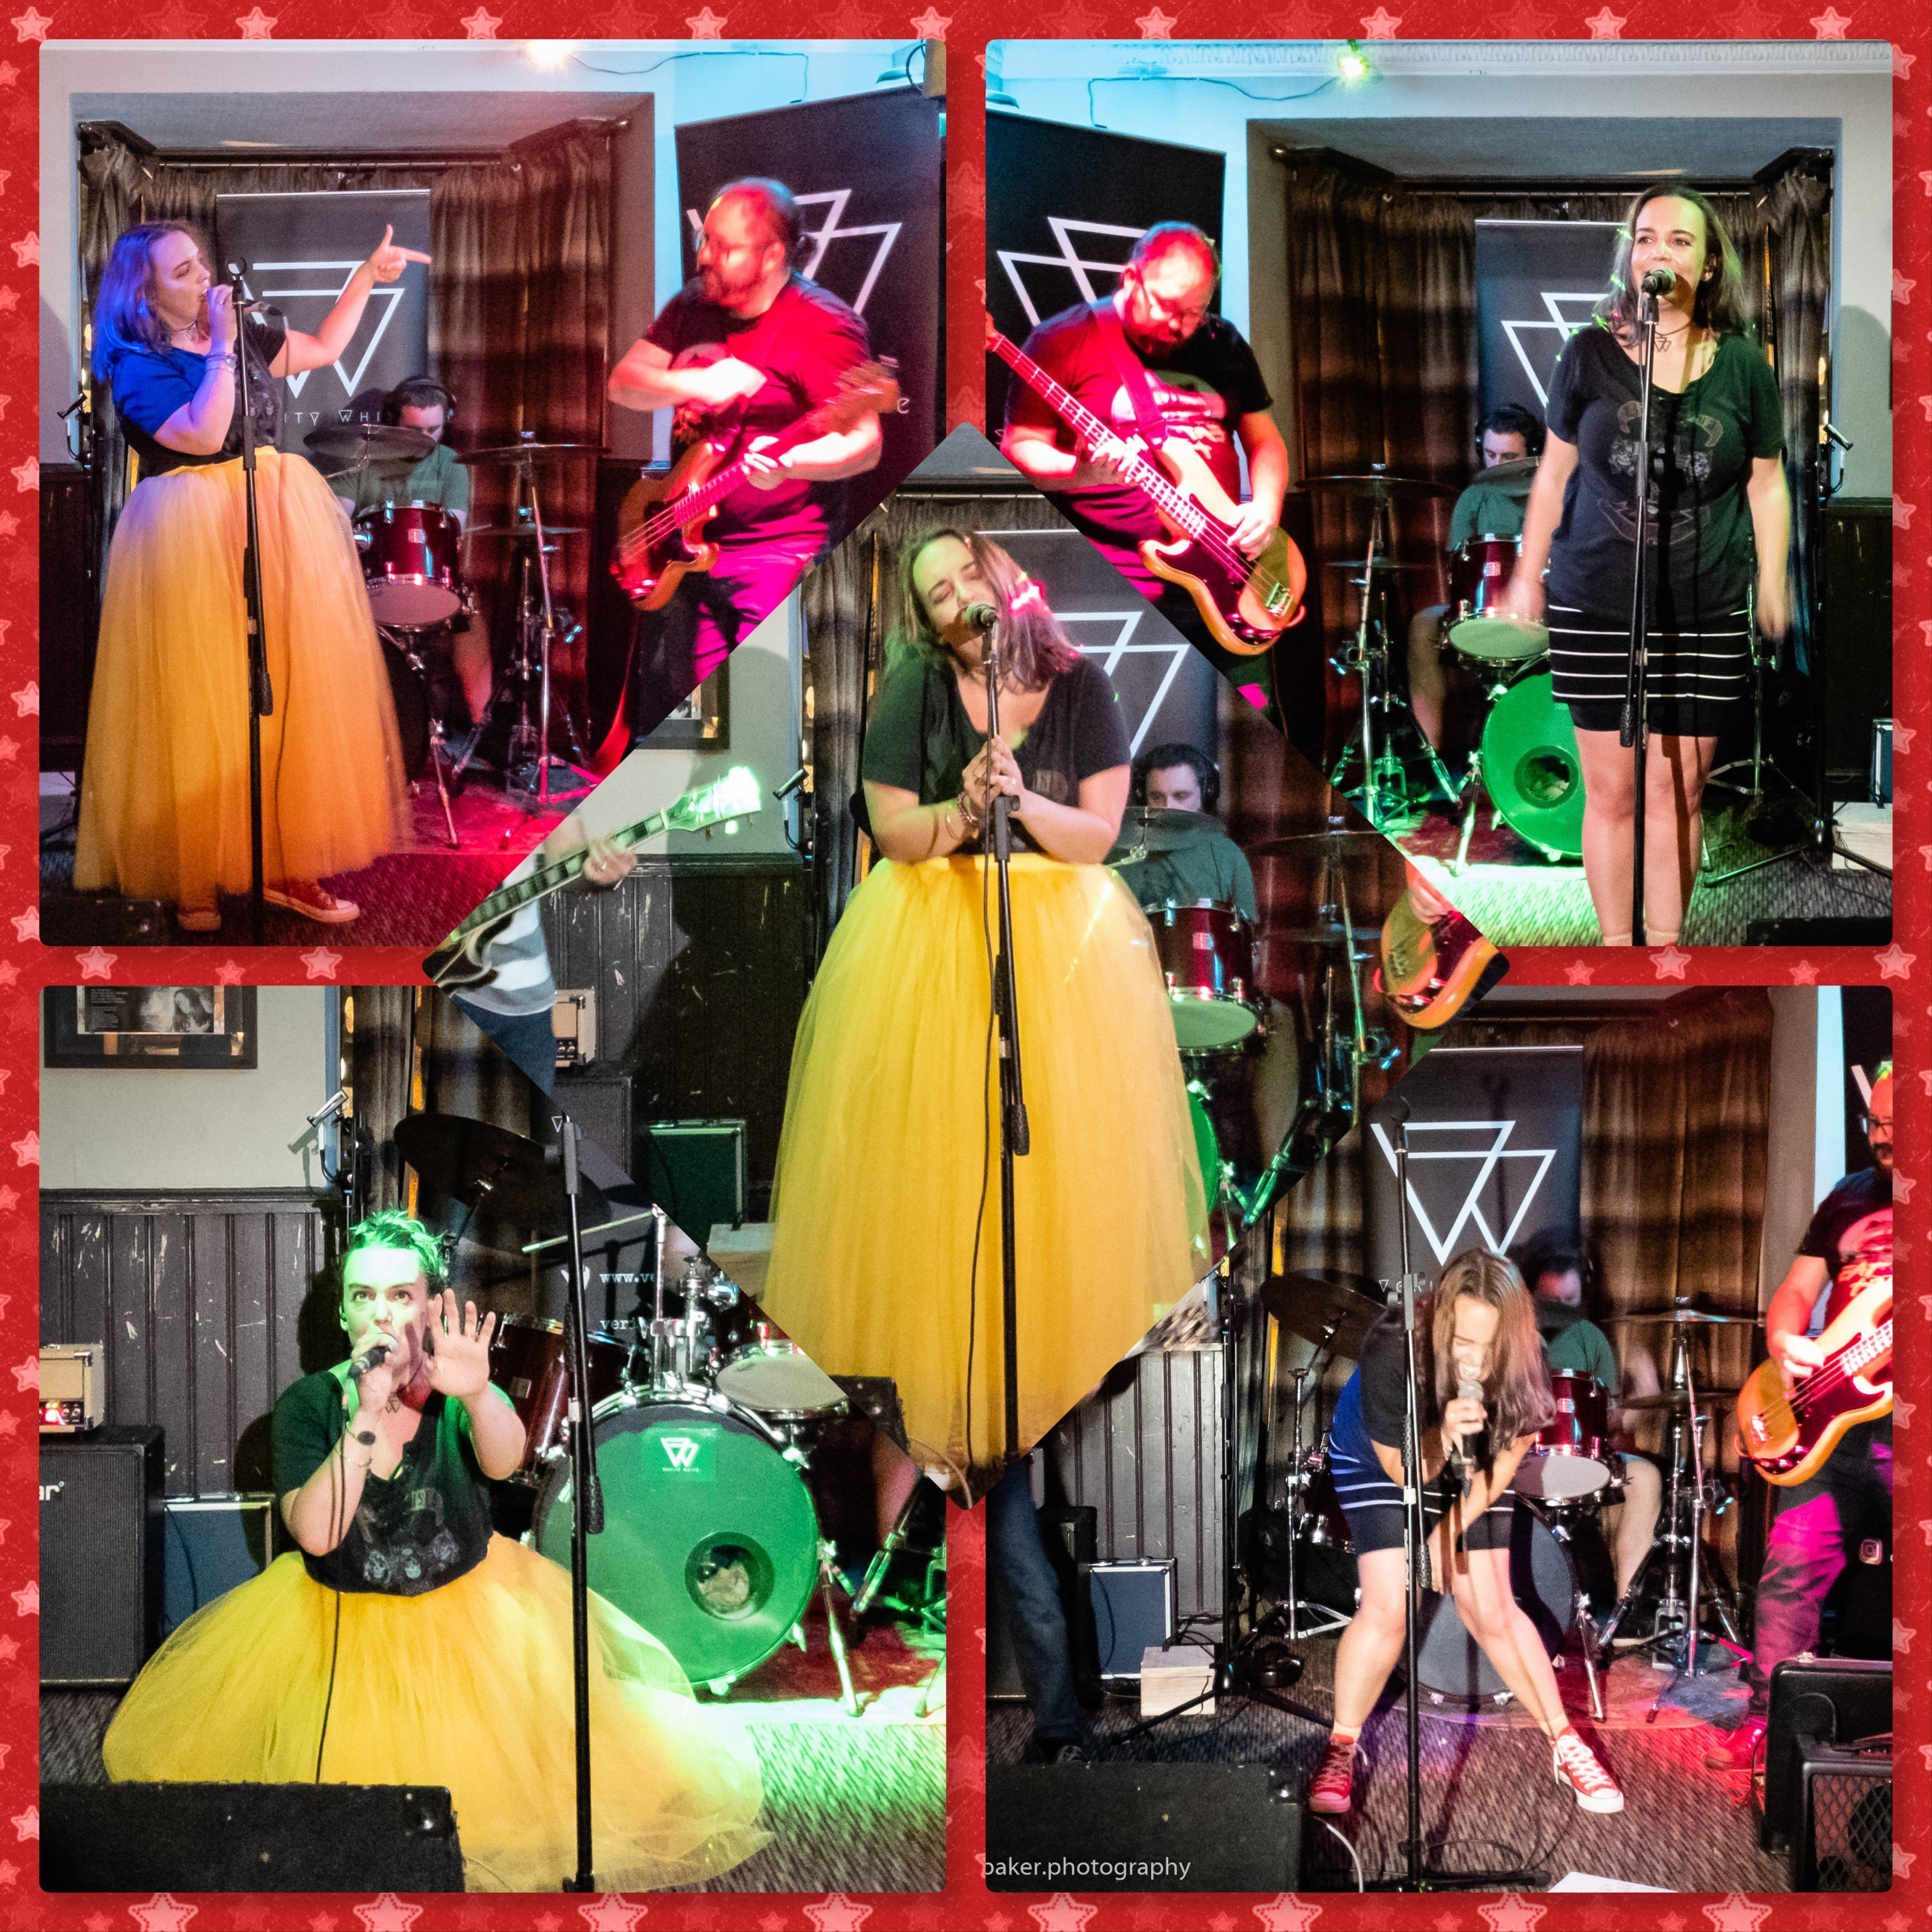 College of images of Verity White performing from Verity White's Gig at the Cotswold Inn